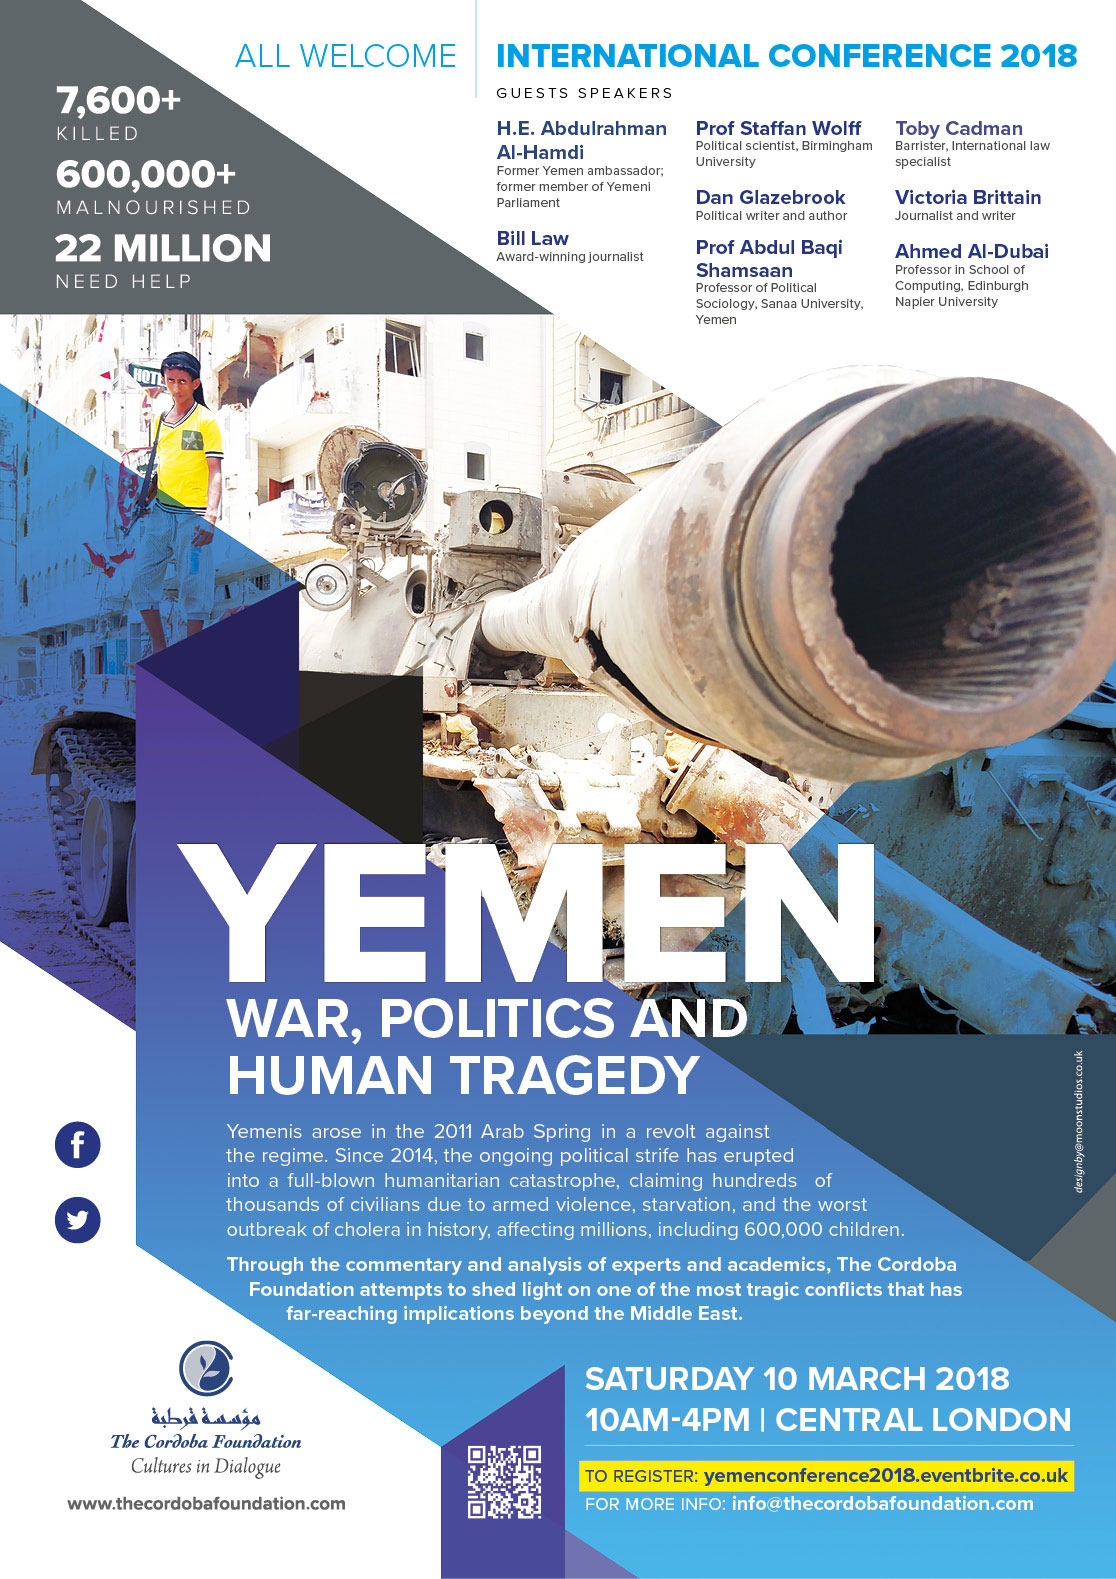 YEMEN: WAR, POLITICS AND HUMAN TRAGEDY